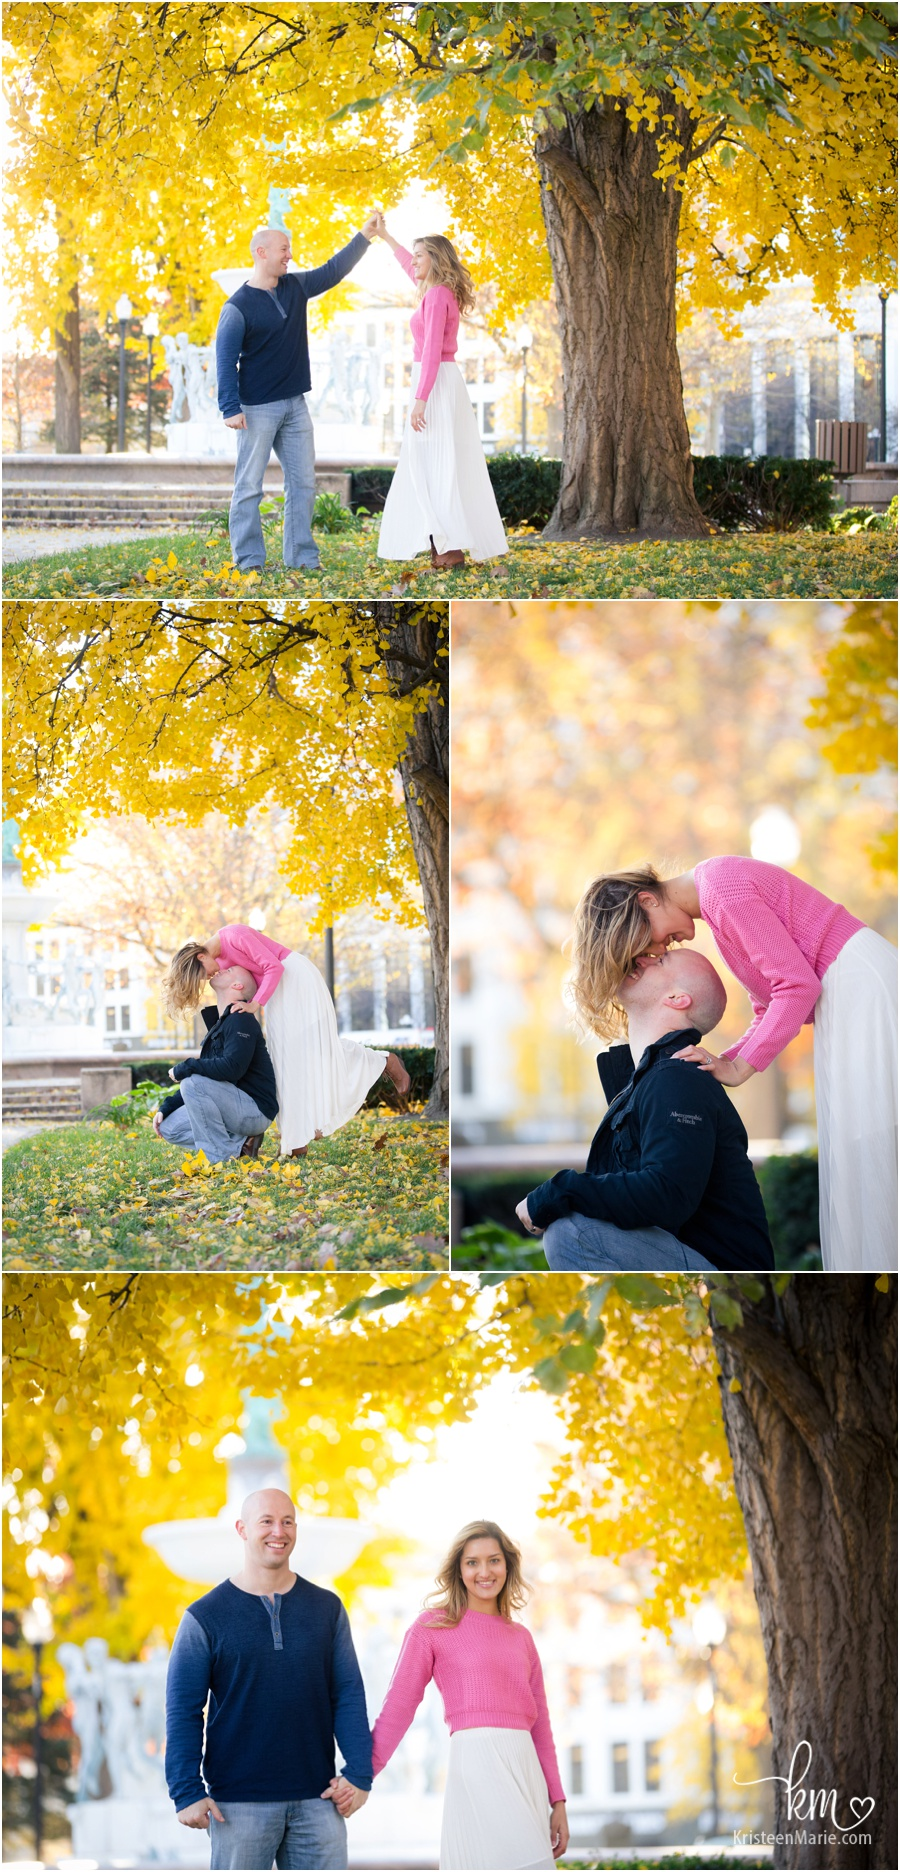 Fall couple photogrphy - fall colors for engagement or copule photography session